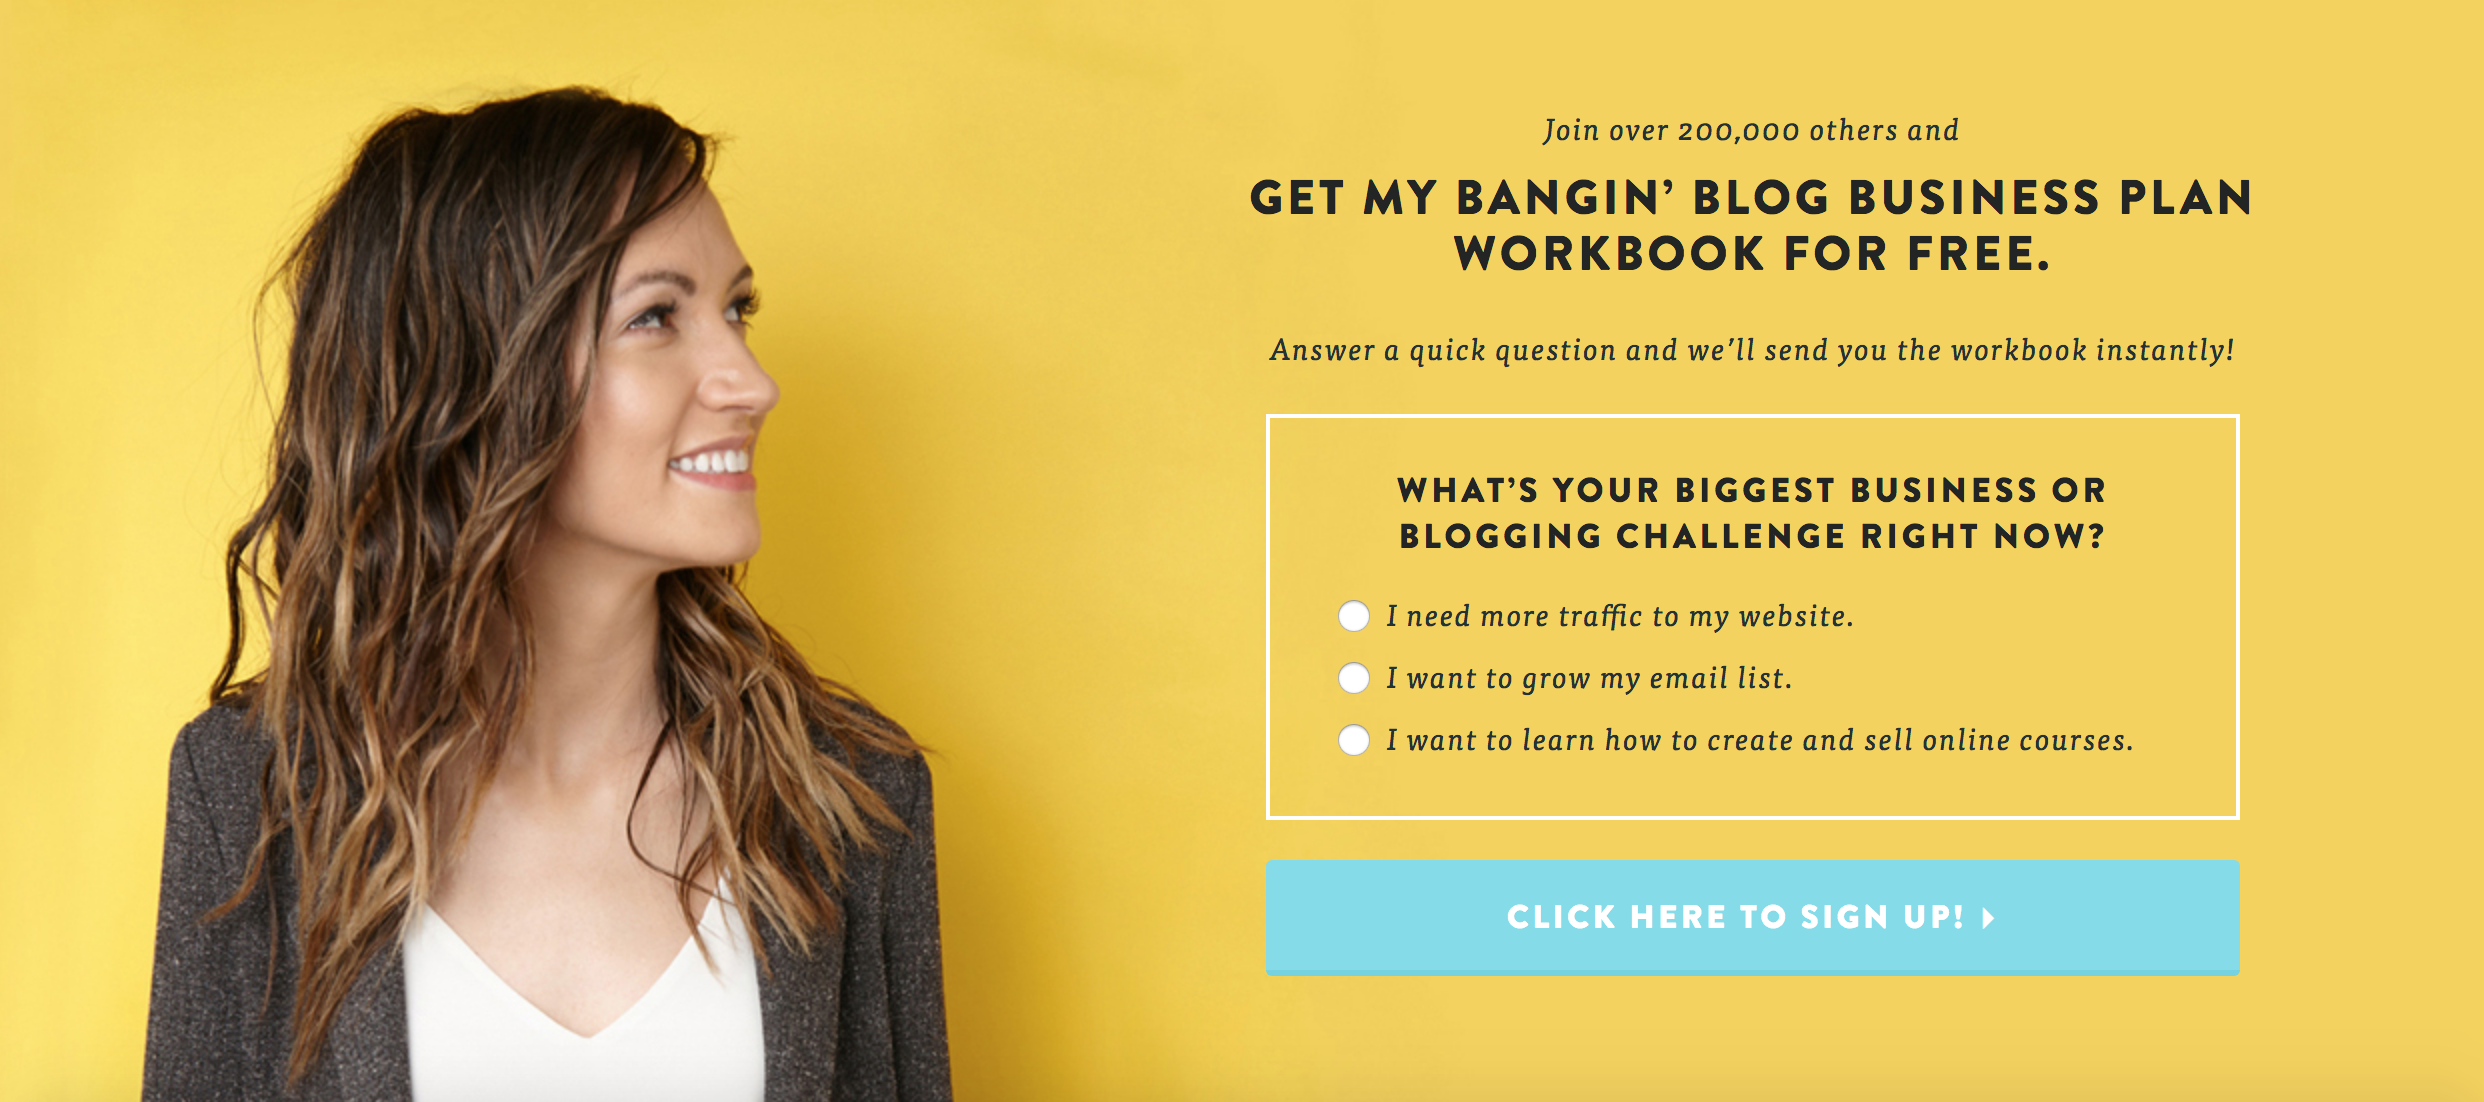 how to build a blog even if you have low traffic